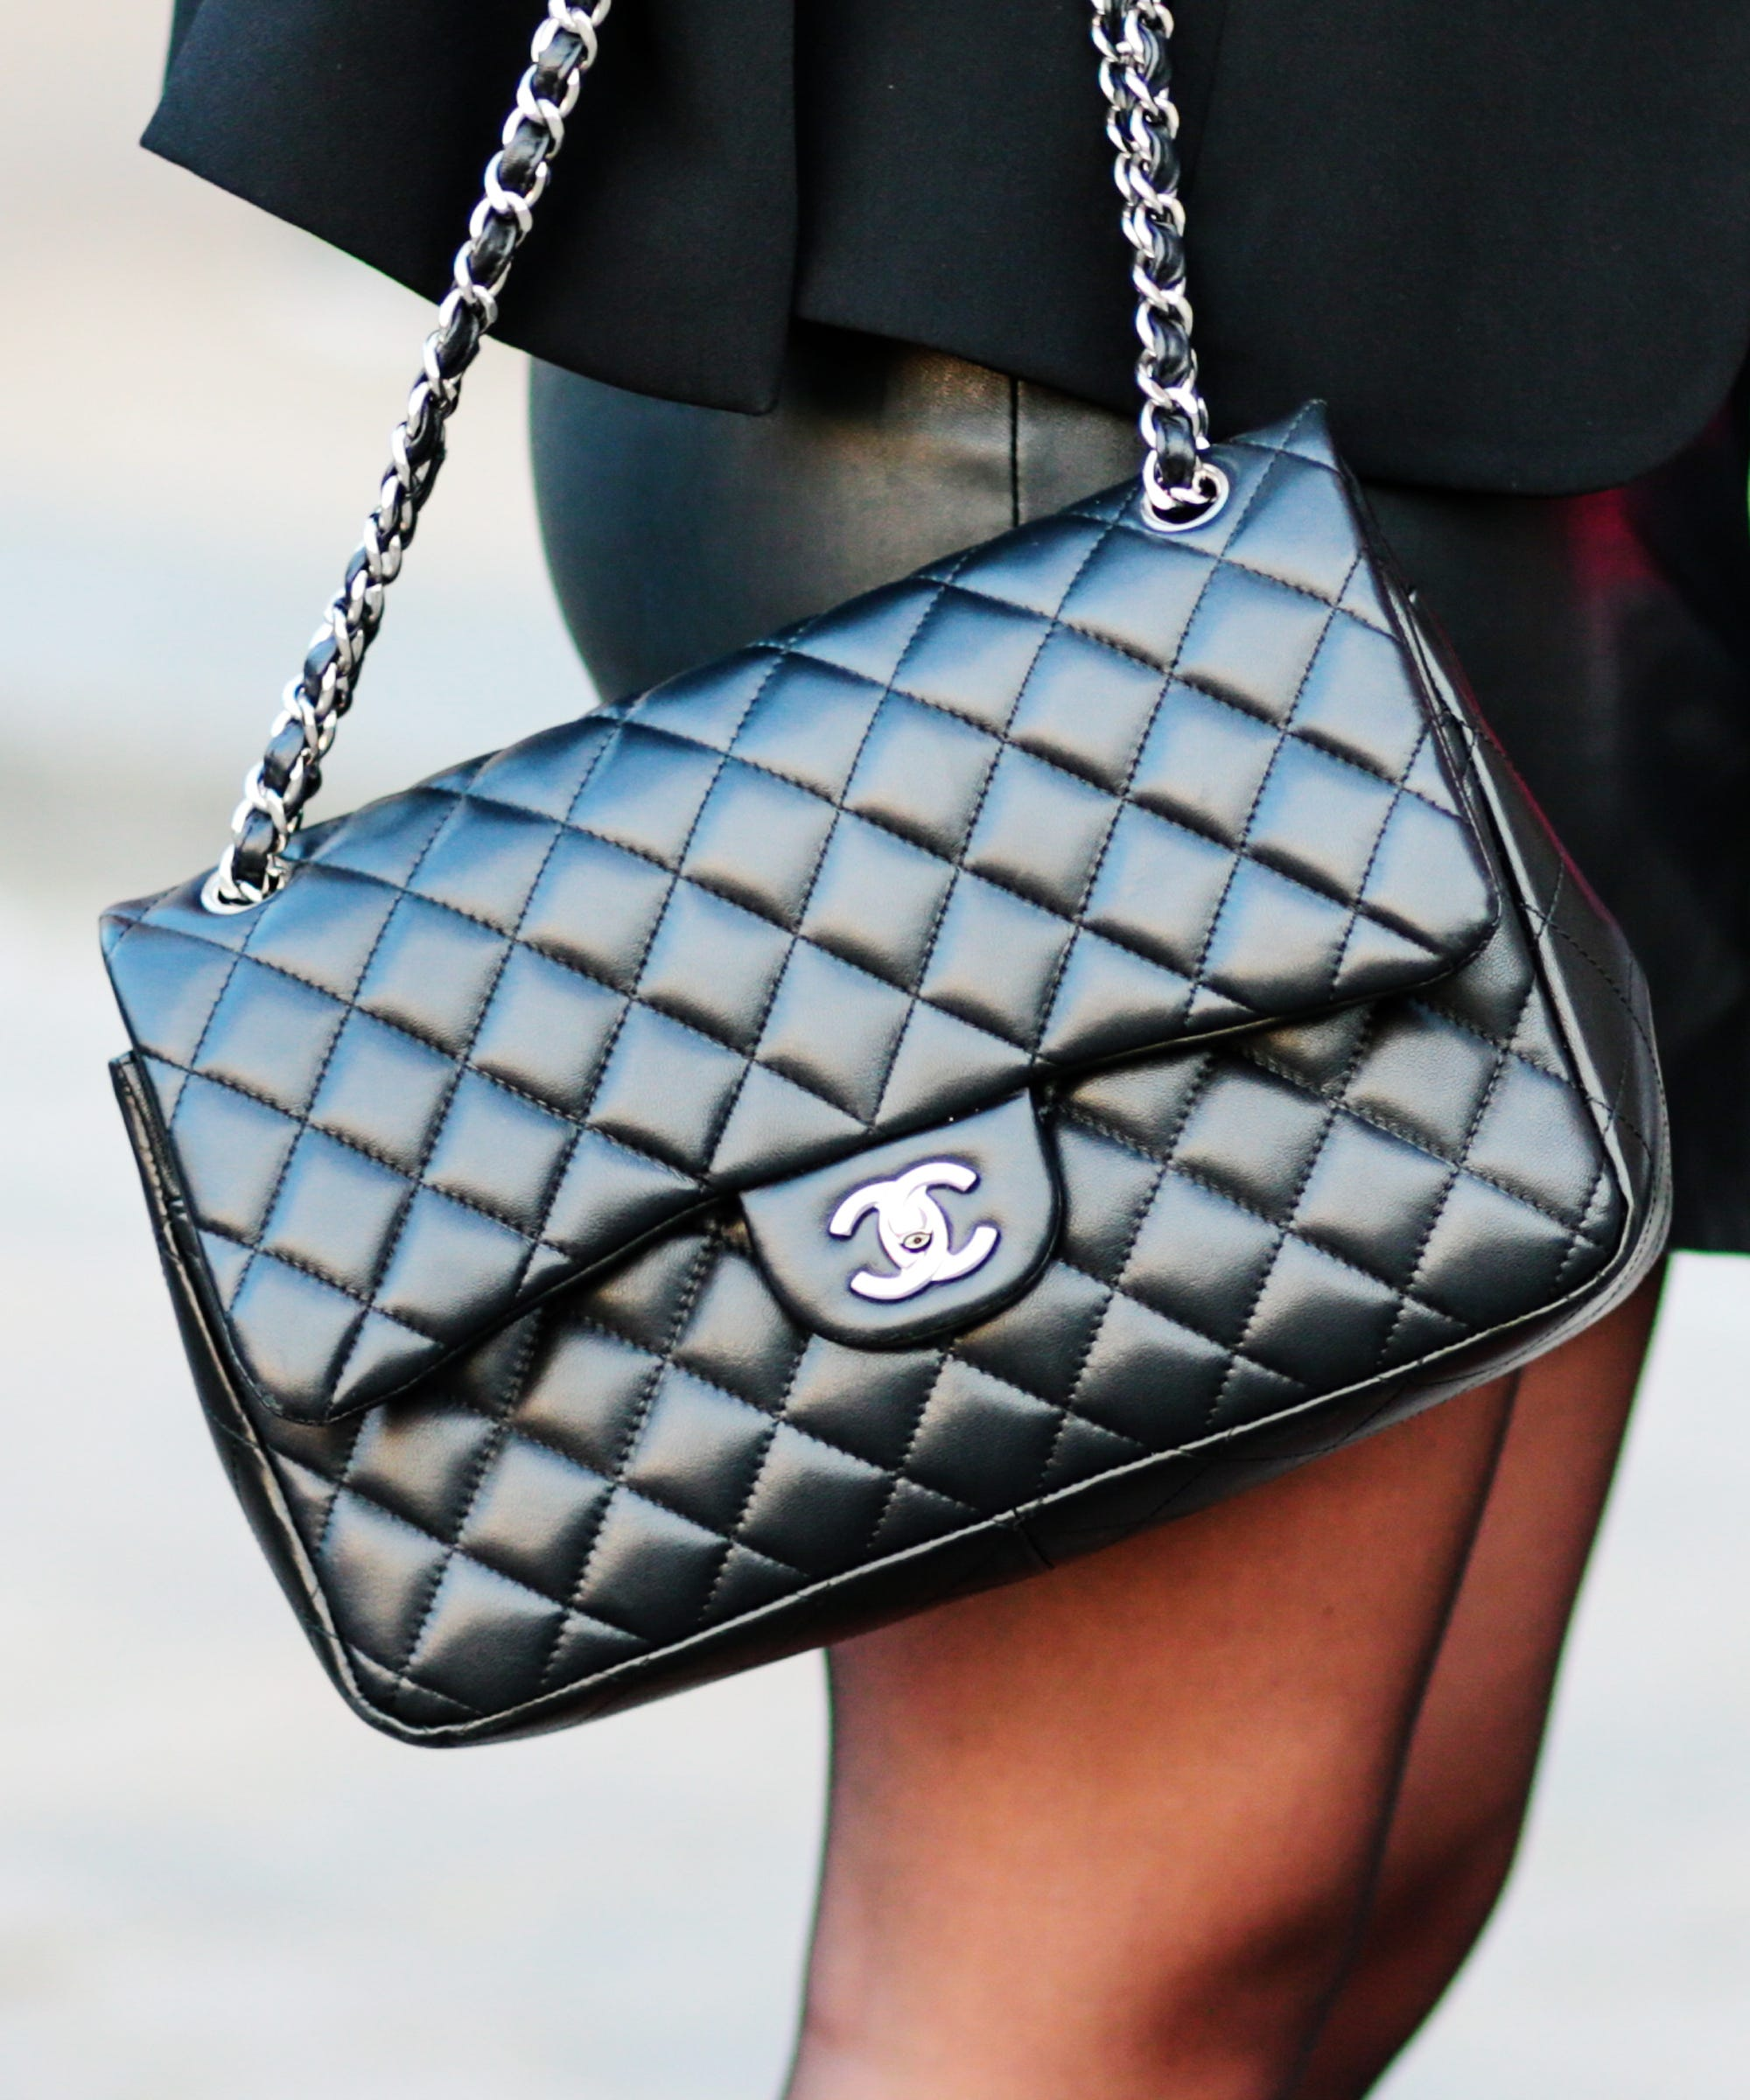 How To Spot A Fake Bag Knockoffs Guide The Real